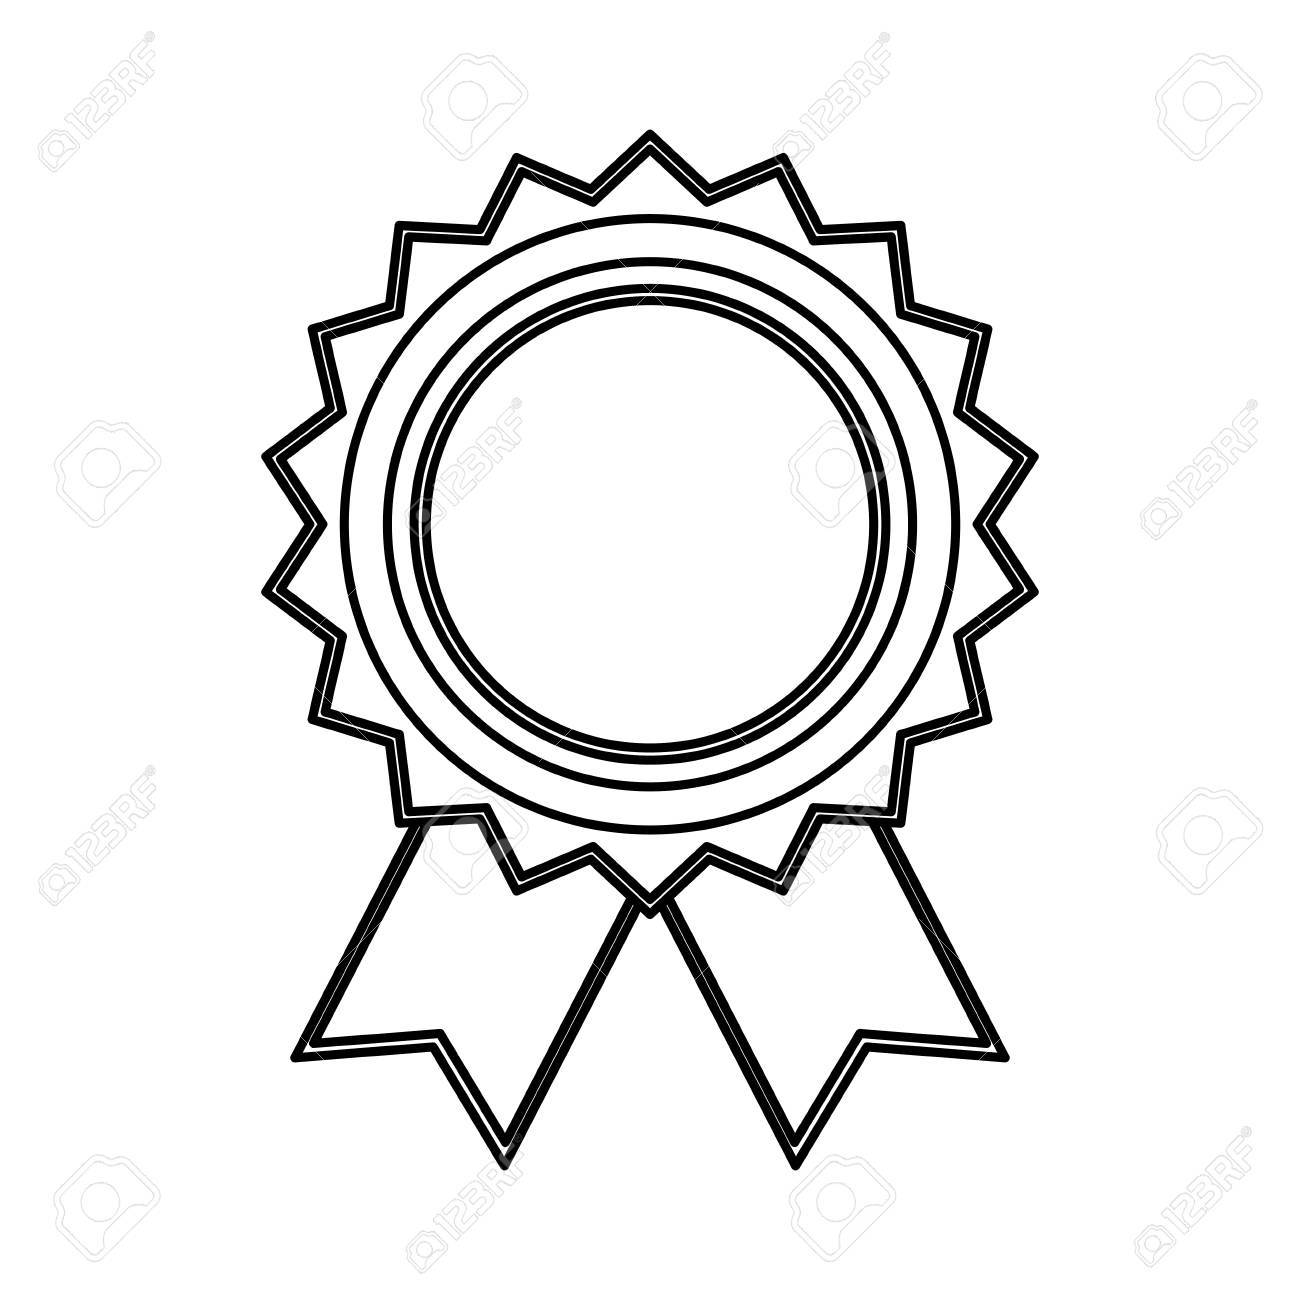 Award ribbon blank » Clipart Portal.